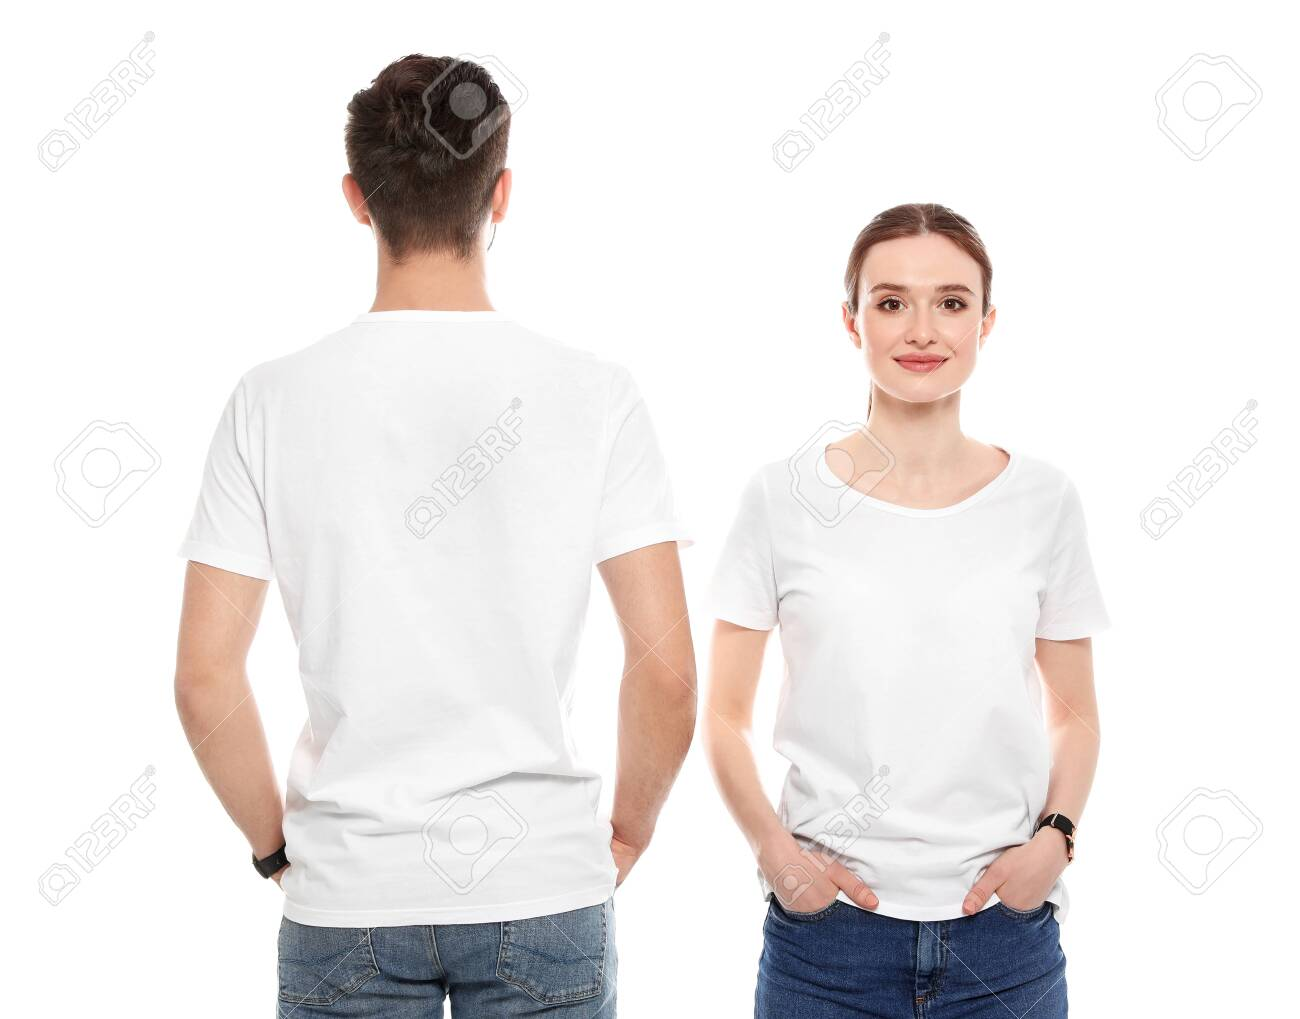 Young people in t-shirts on white background. Mock up for design - 126729997